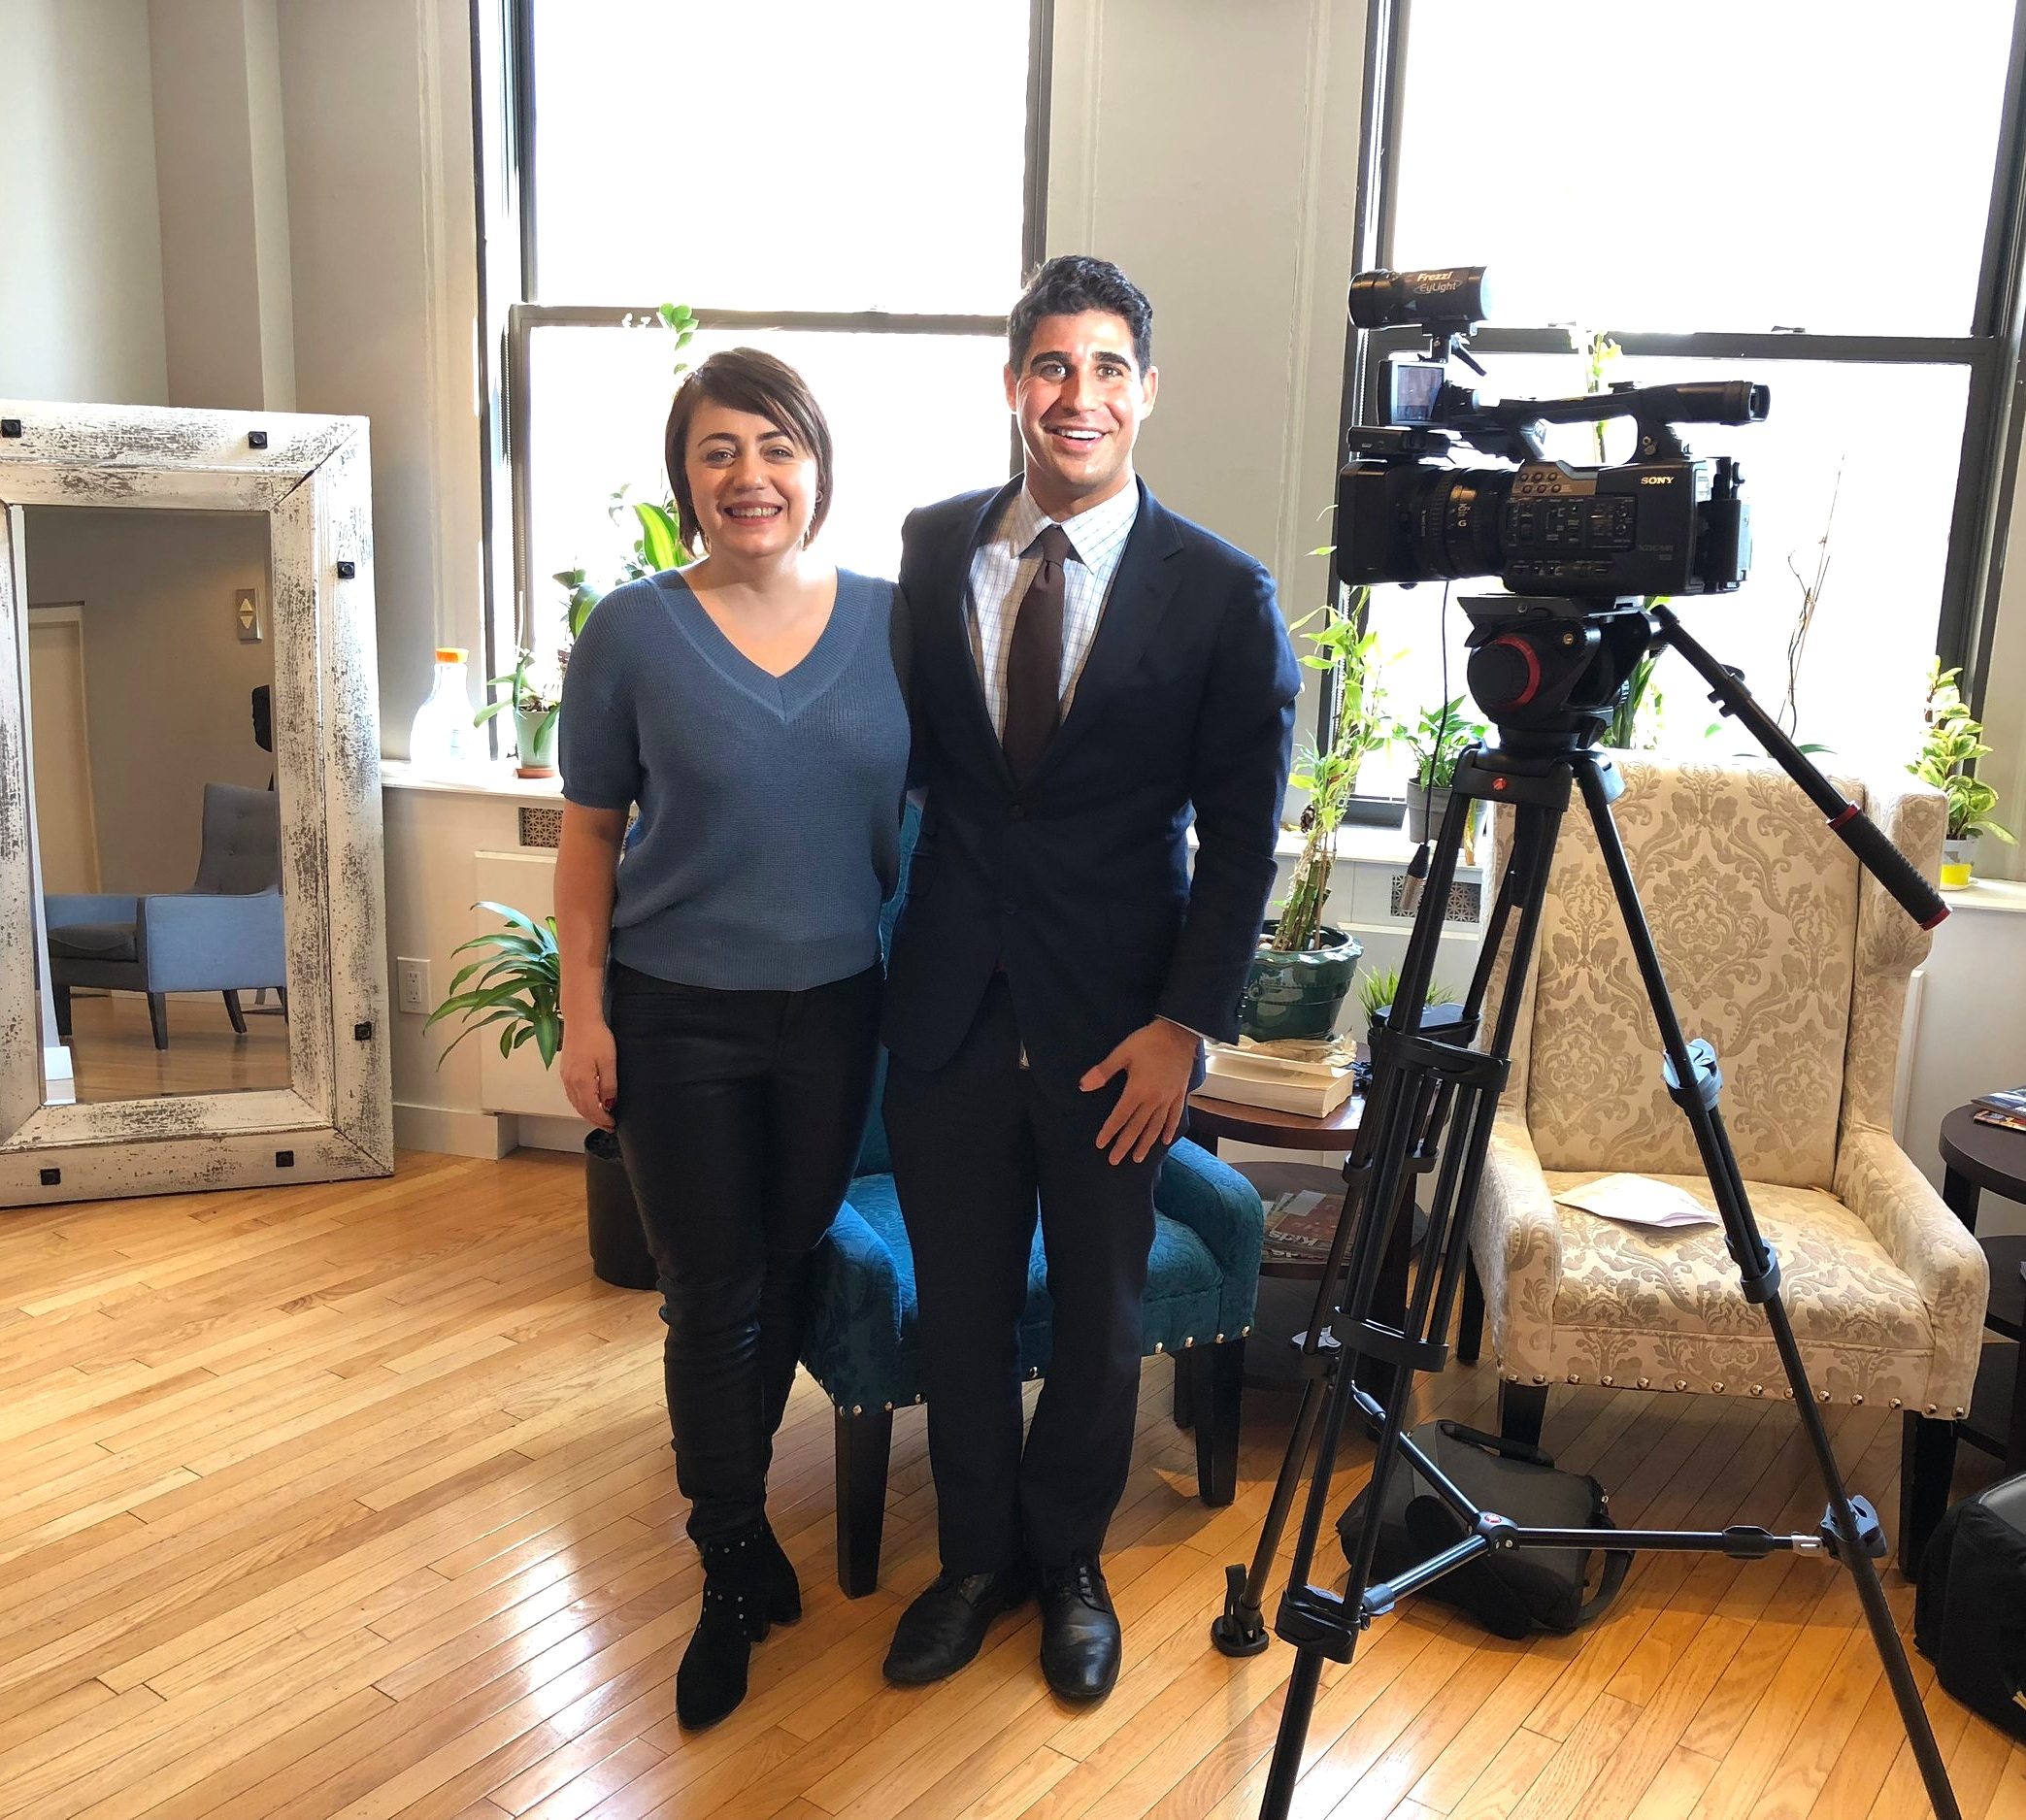 Irina Popa-Erwin of The NYC Life Coach on CBS NY Interview by Marc Liverman